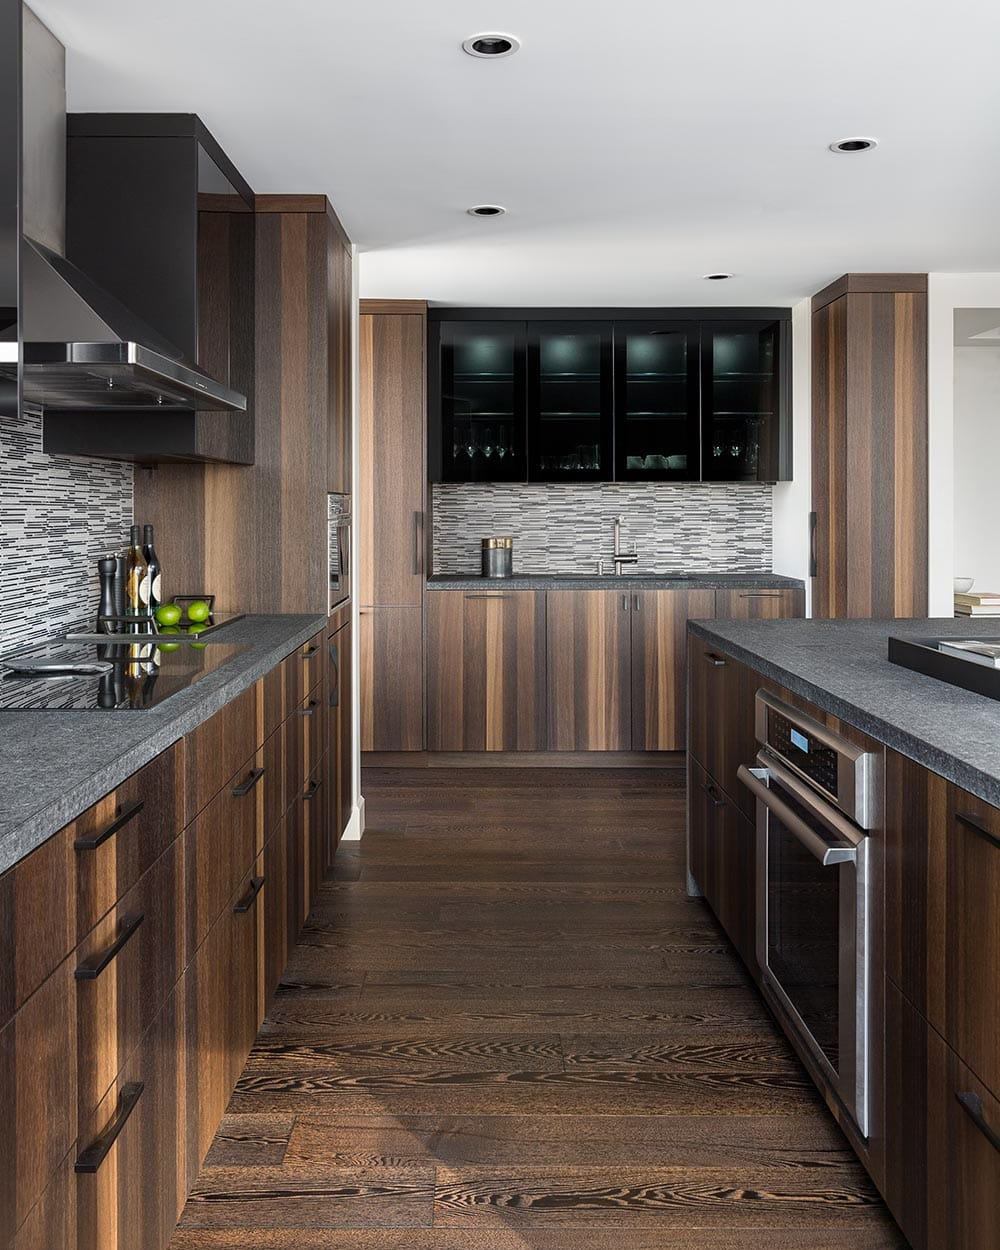 Modern Kitchen in Warm Woods and Tones of Grey